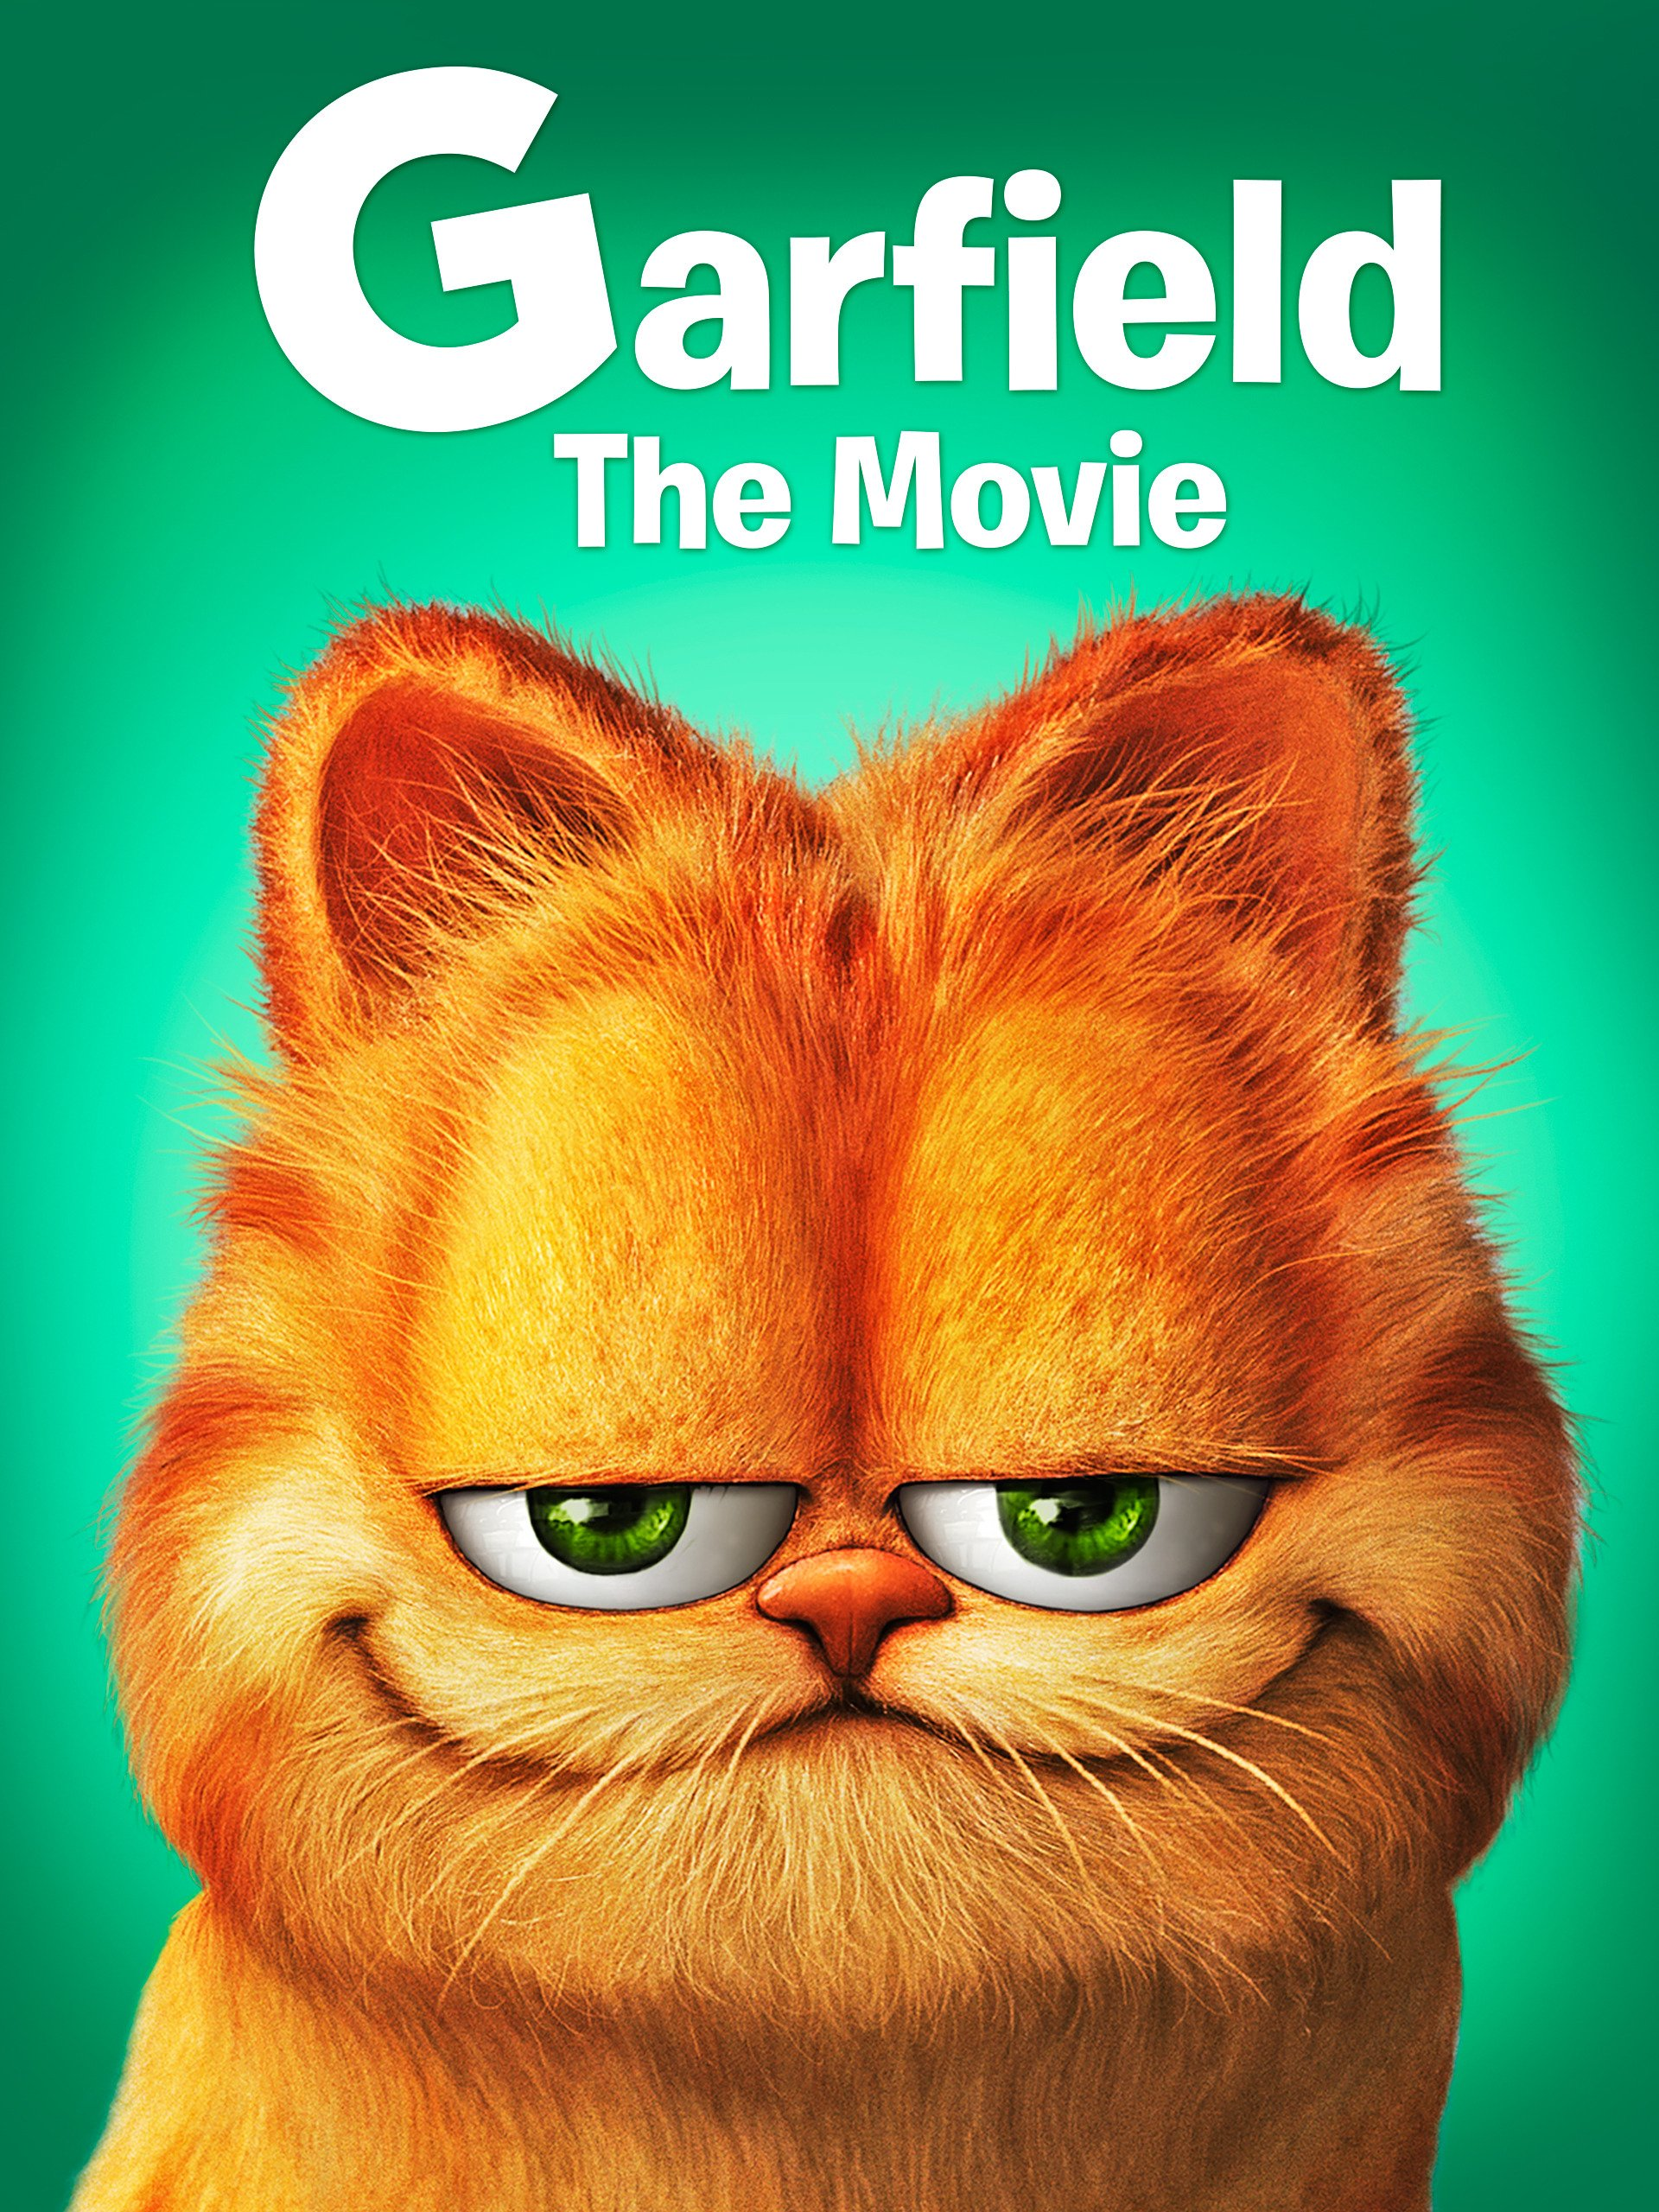 garfield the movie full movie in tamil free download